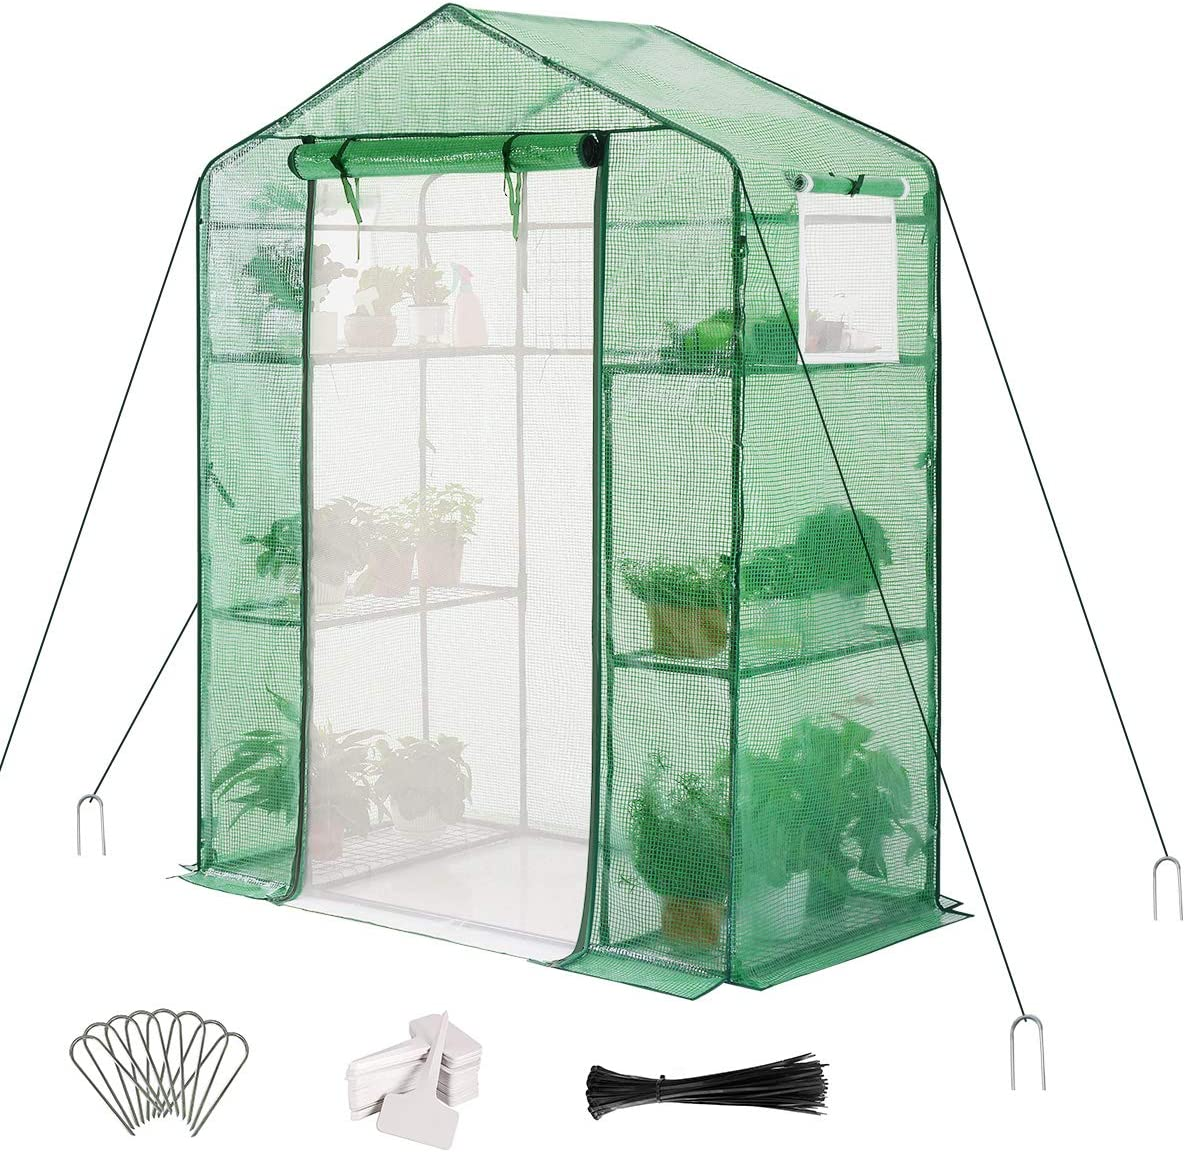 "Quictent Greenhouse Mesh Door 2 Windows 3 Tiers 6 Shelves 56"" W x 29"" D x 77"" H Walk in Outdoor Portable Plant Garden Green House 50 T-Type Plant Tags 8 Stakes 4 Ropes Include (Green)"